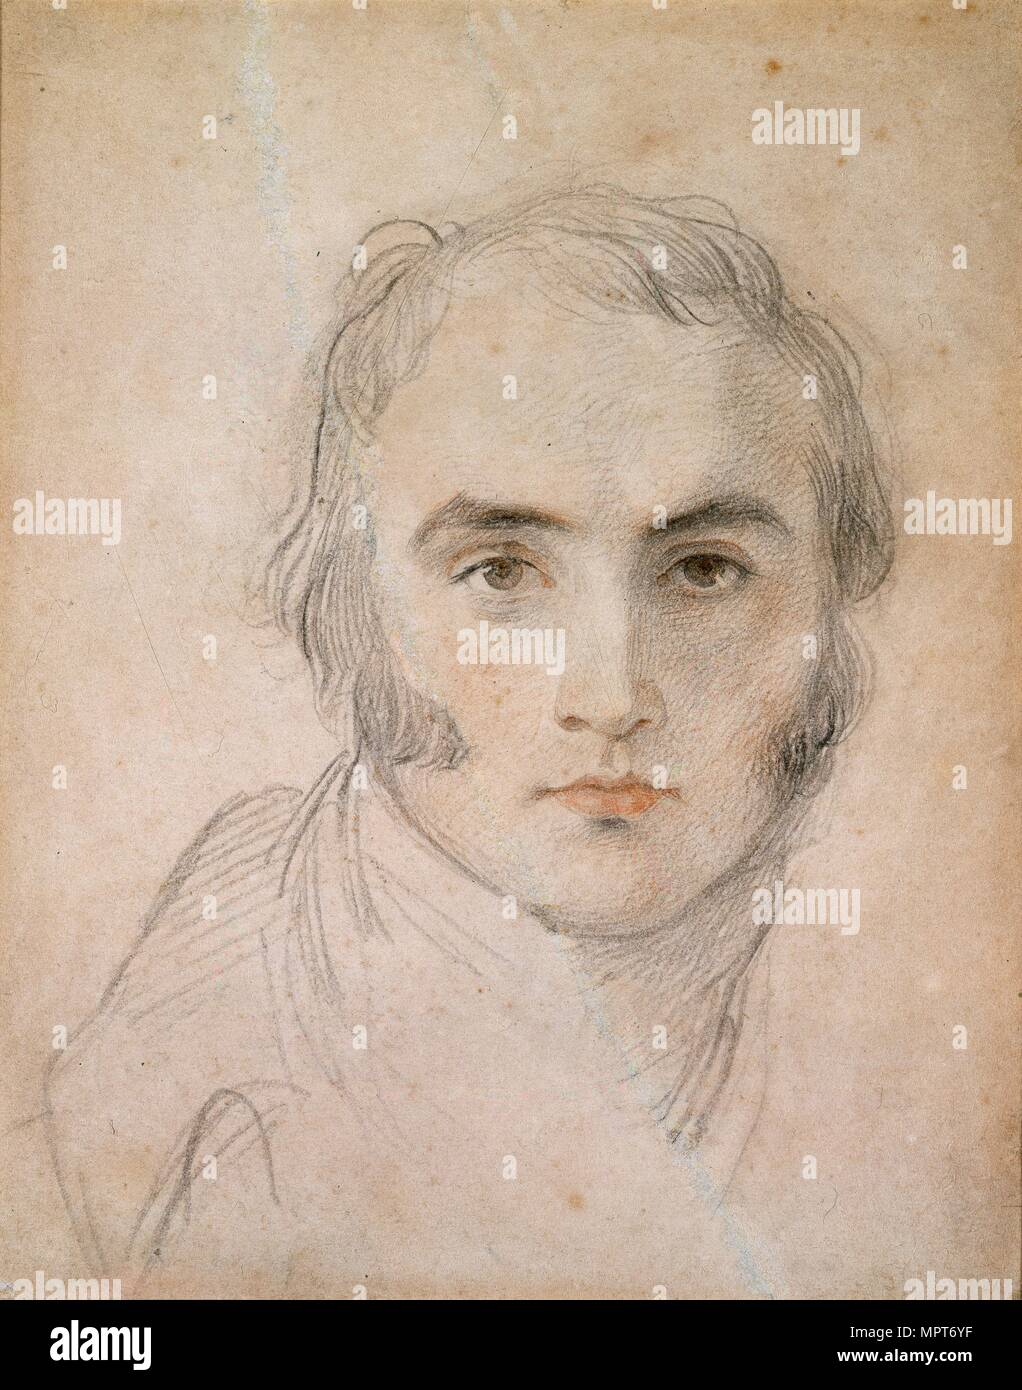 Self-portrait, c1800s Artist: Thomas Lawrence. - Stock Image